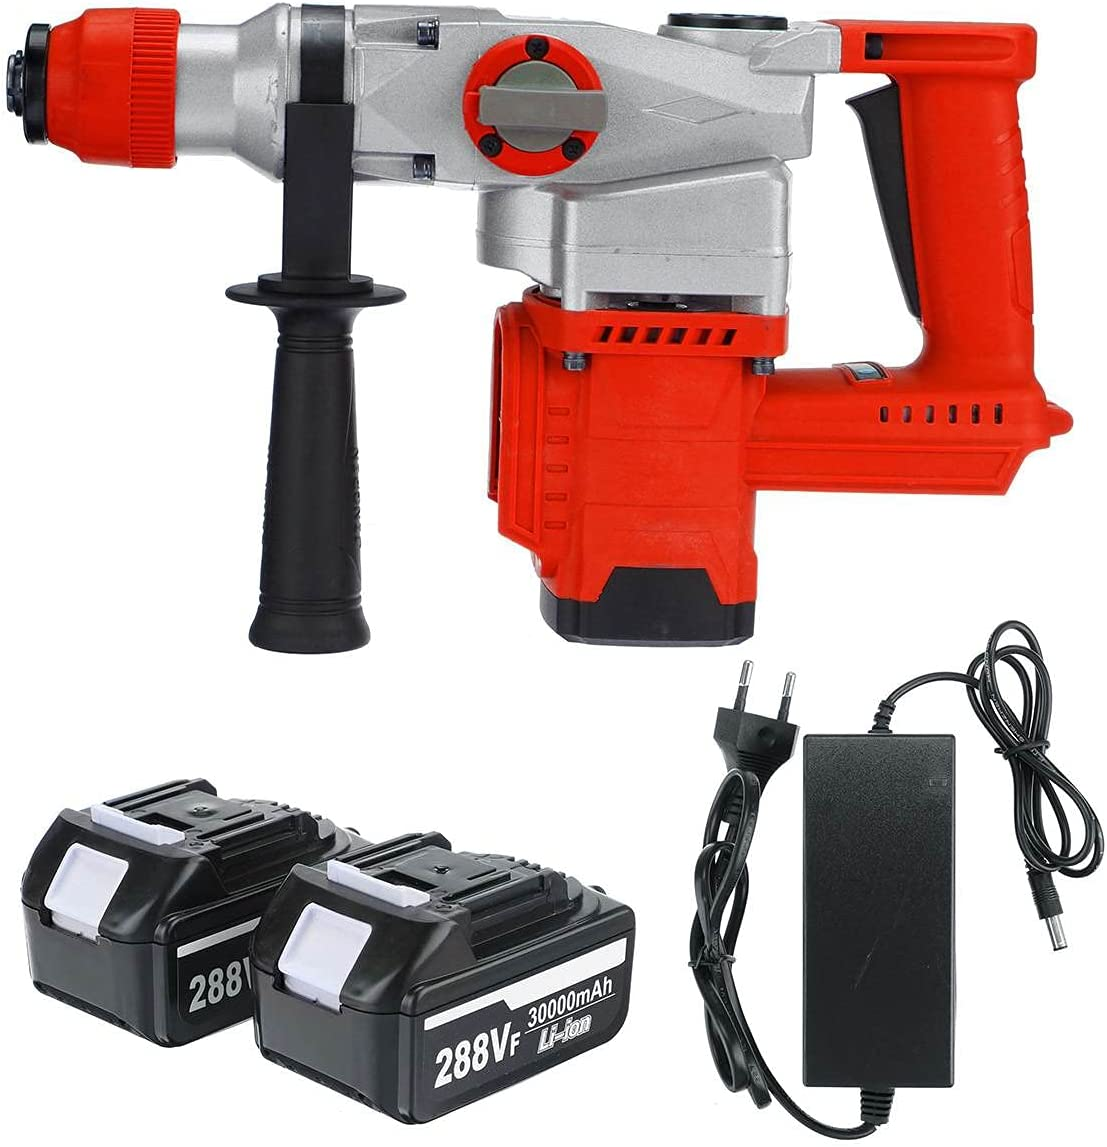 San Diego Mall Trust DACHENZI 3 In 1 288V Cordless Rechargeable Brushless Hamm Rotary